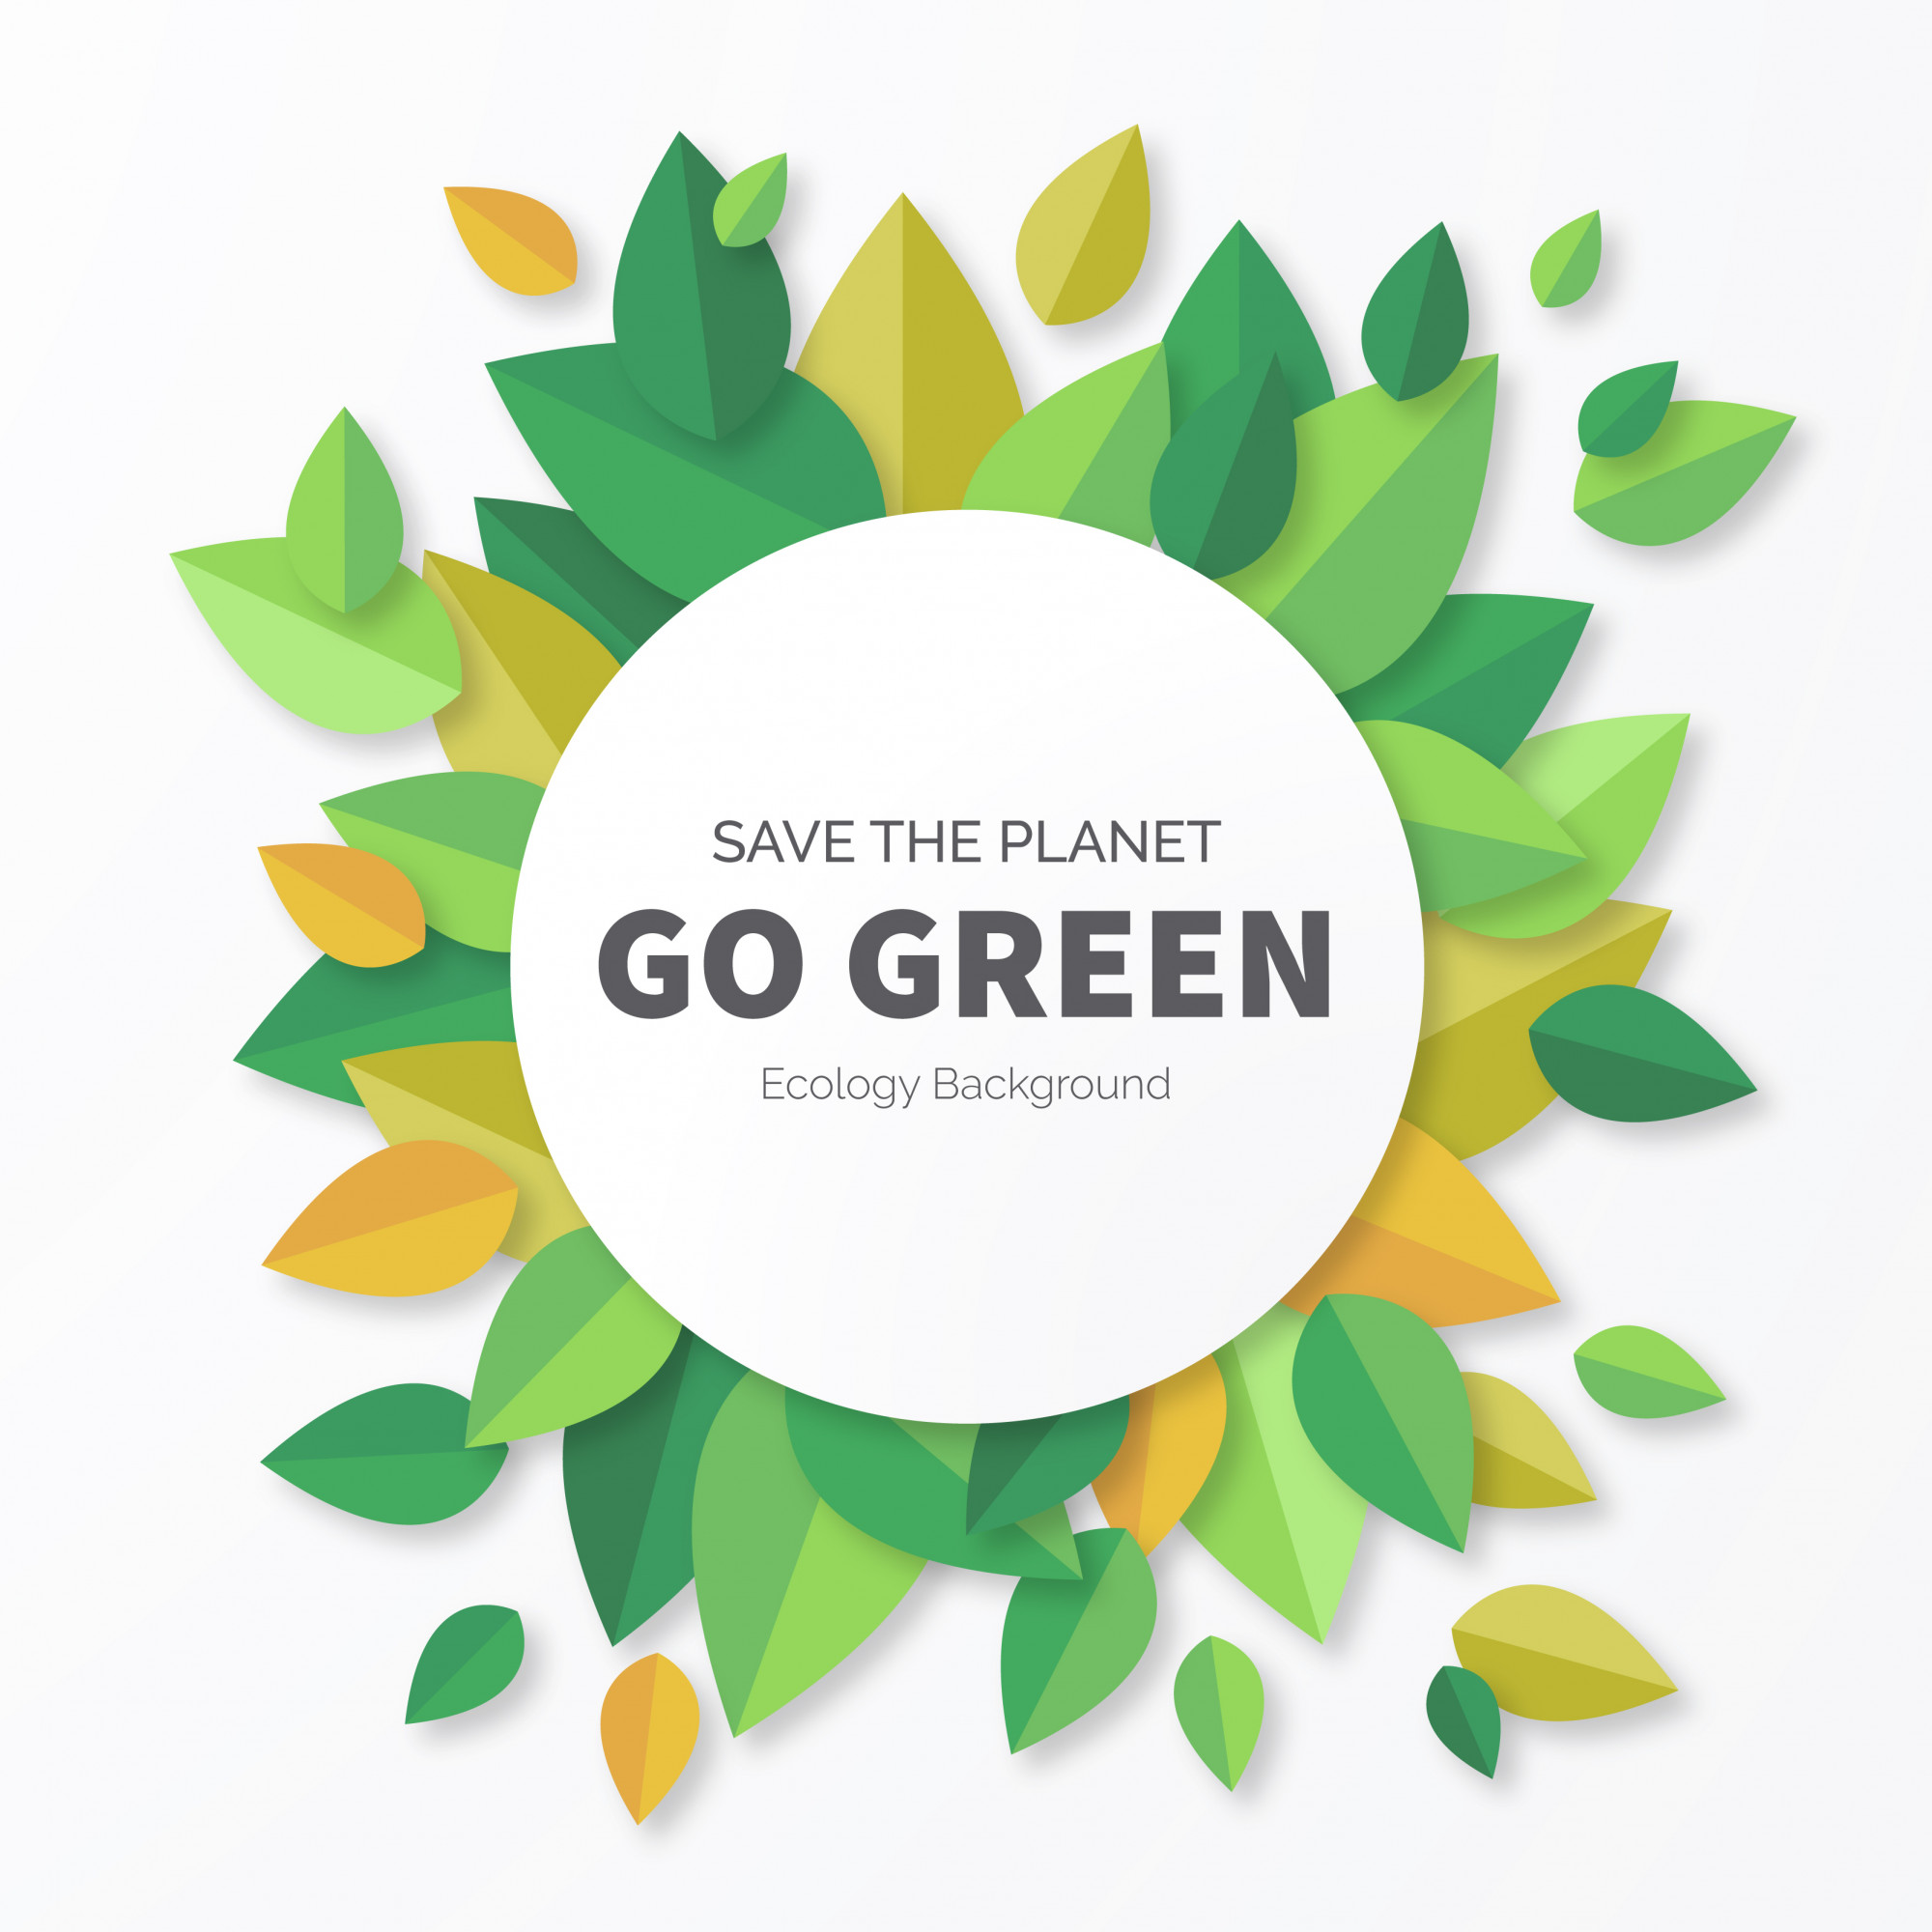 Go Green Background with Leaves